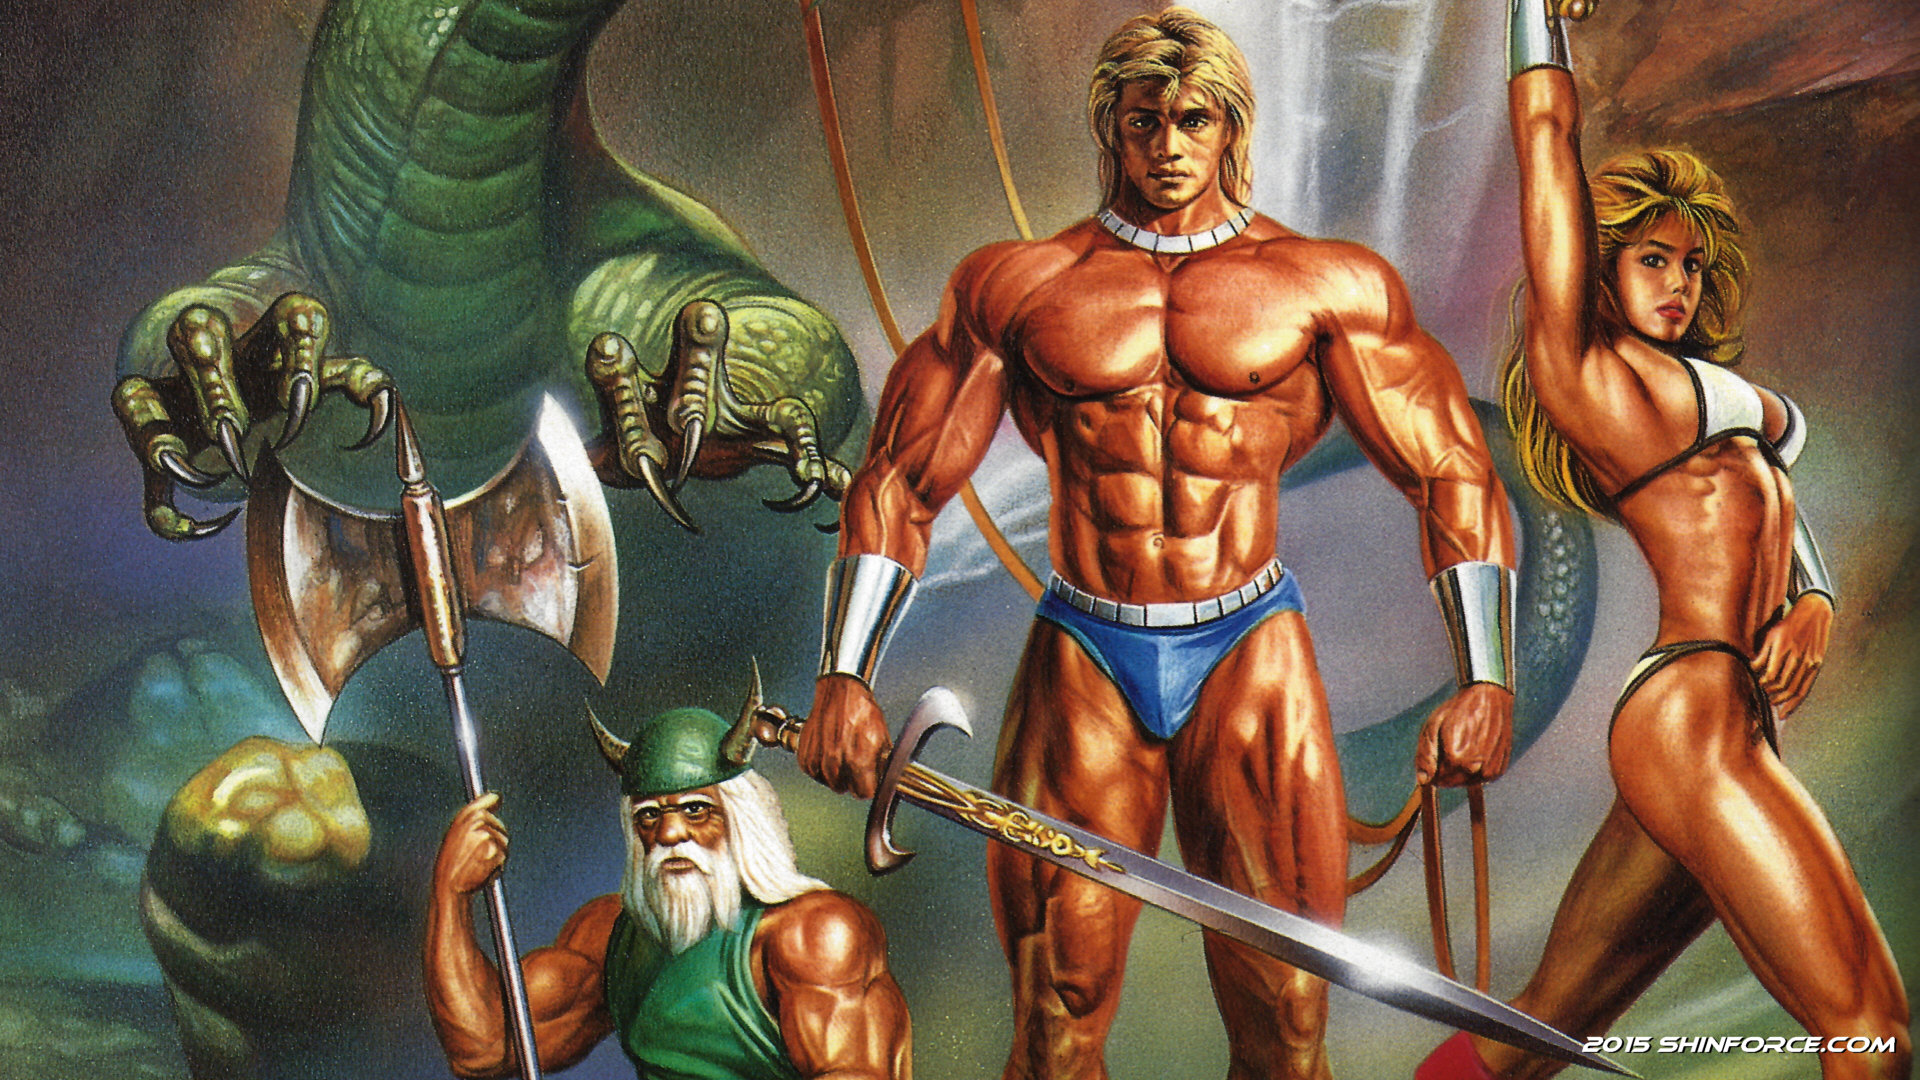 Photo of A Golden Axe remake with Odin Sphere visuals was scrapped by SEGA